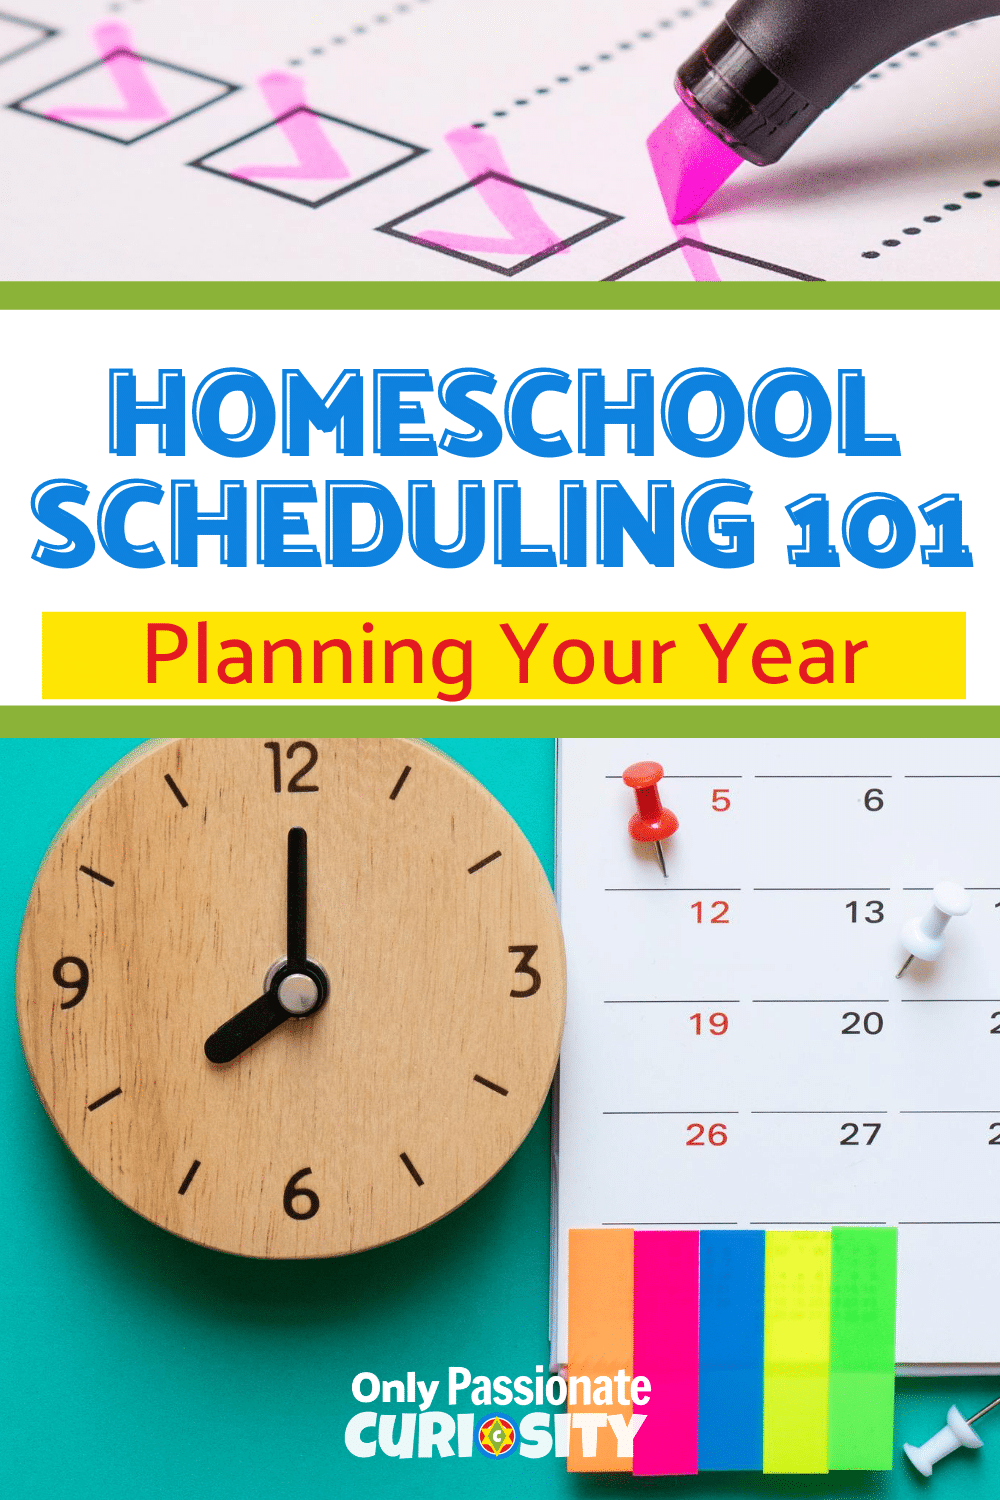 Homeschool Scheduling 101, is designed to help you get your scheduling done quickly and efficiently--so you can plan your year ahead. #Homeschool #Timemanagement #Planning